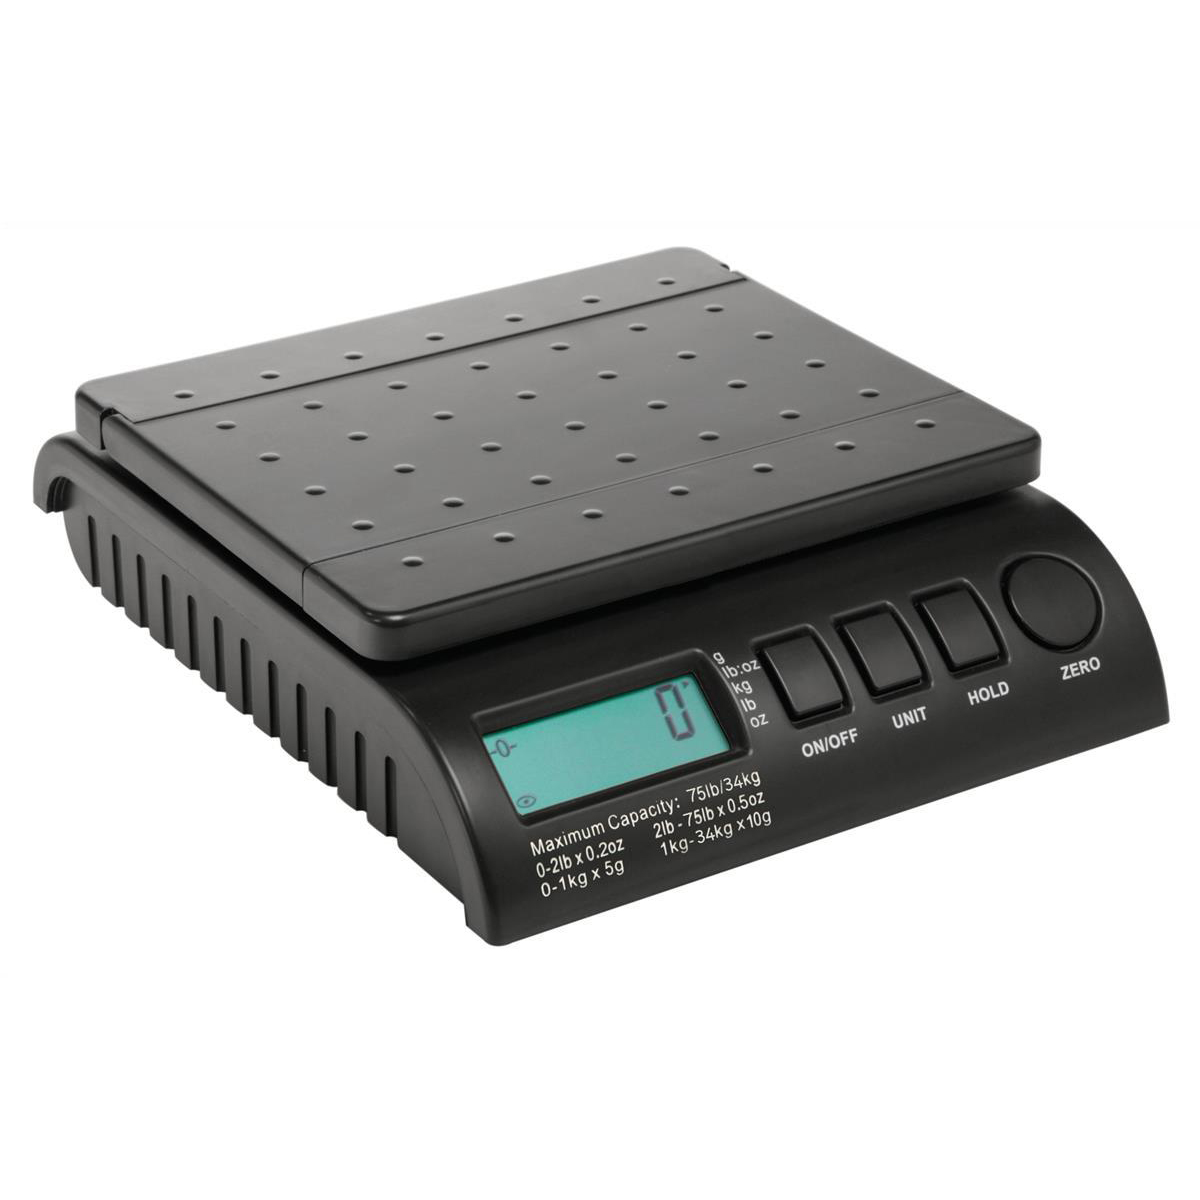 Postal scales Postship Multi Purpose Scale 5g or 10g Increments Capacity 34kg LCD Display Black Ref PS3400B